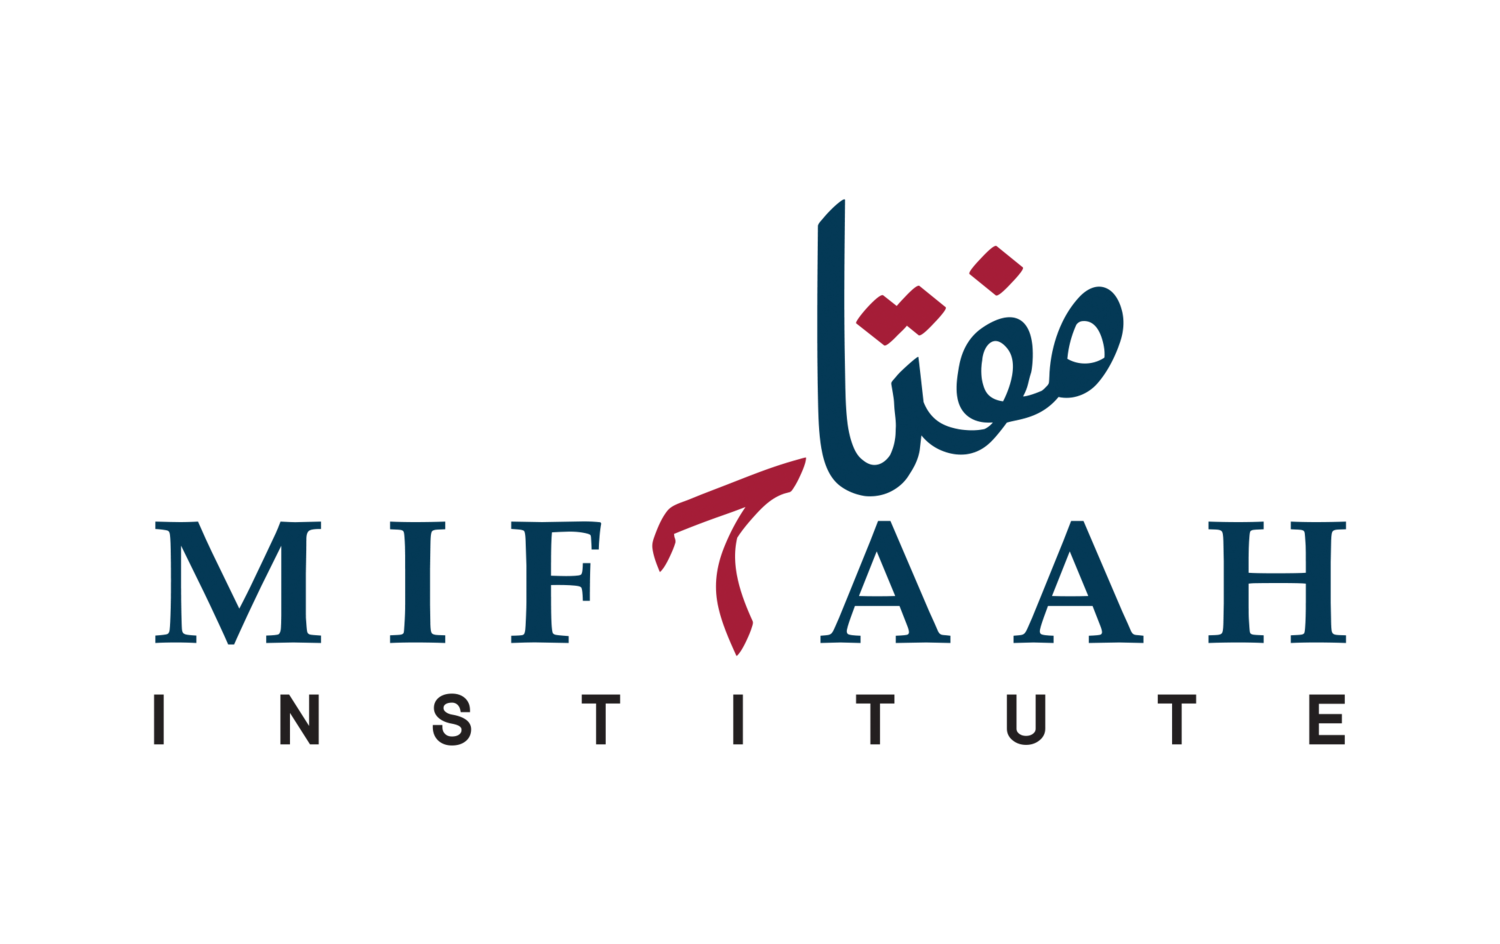 Miftaah Institute